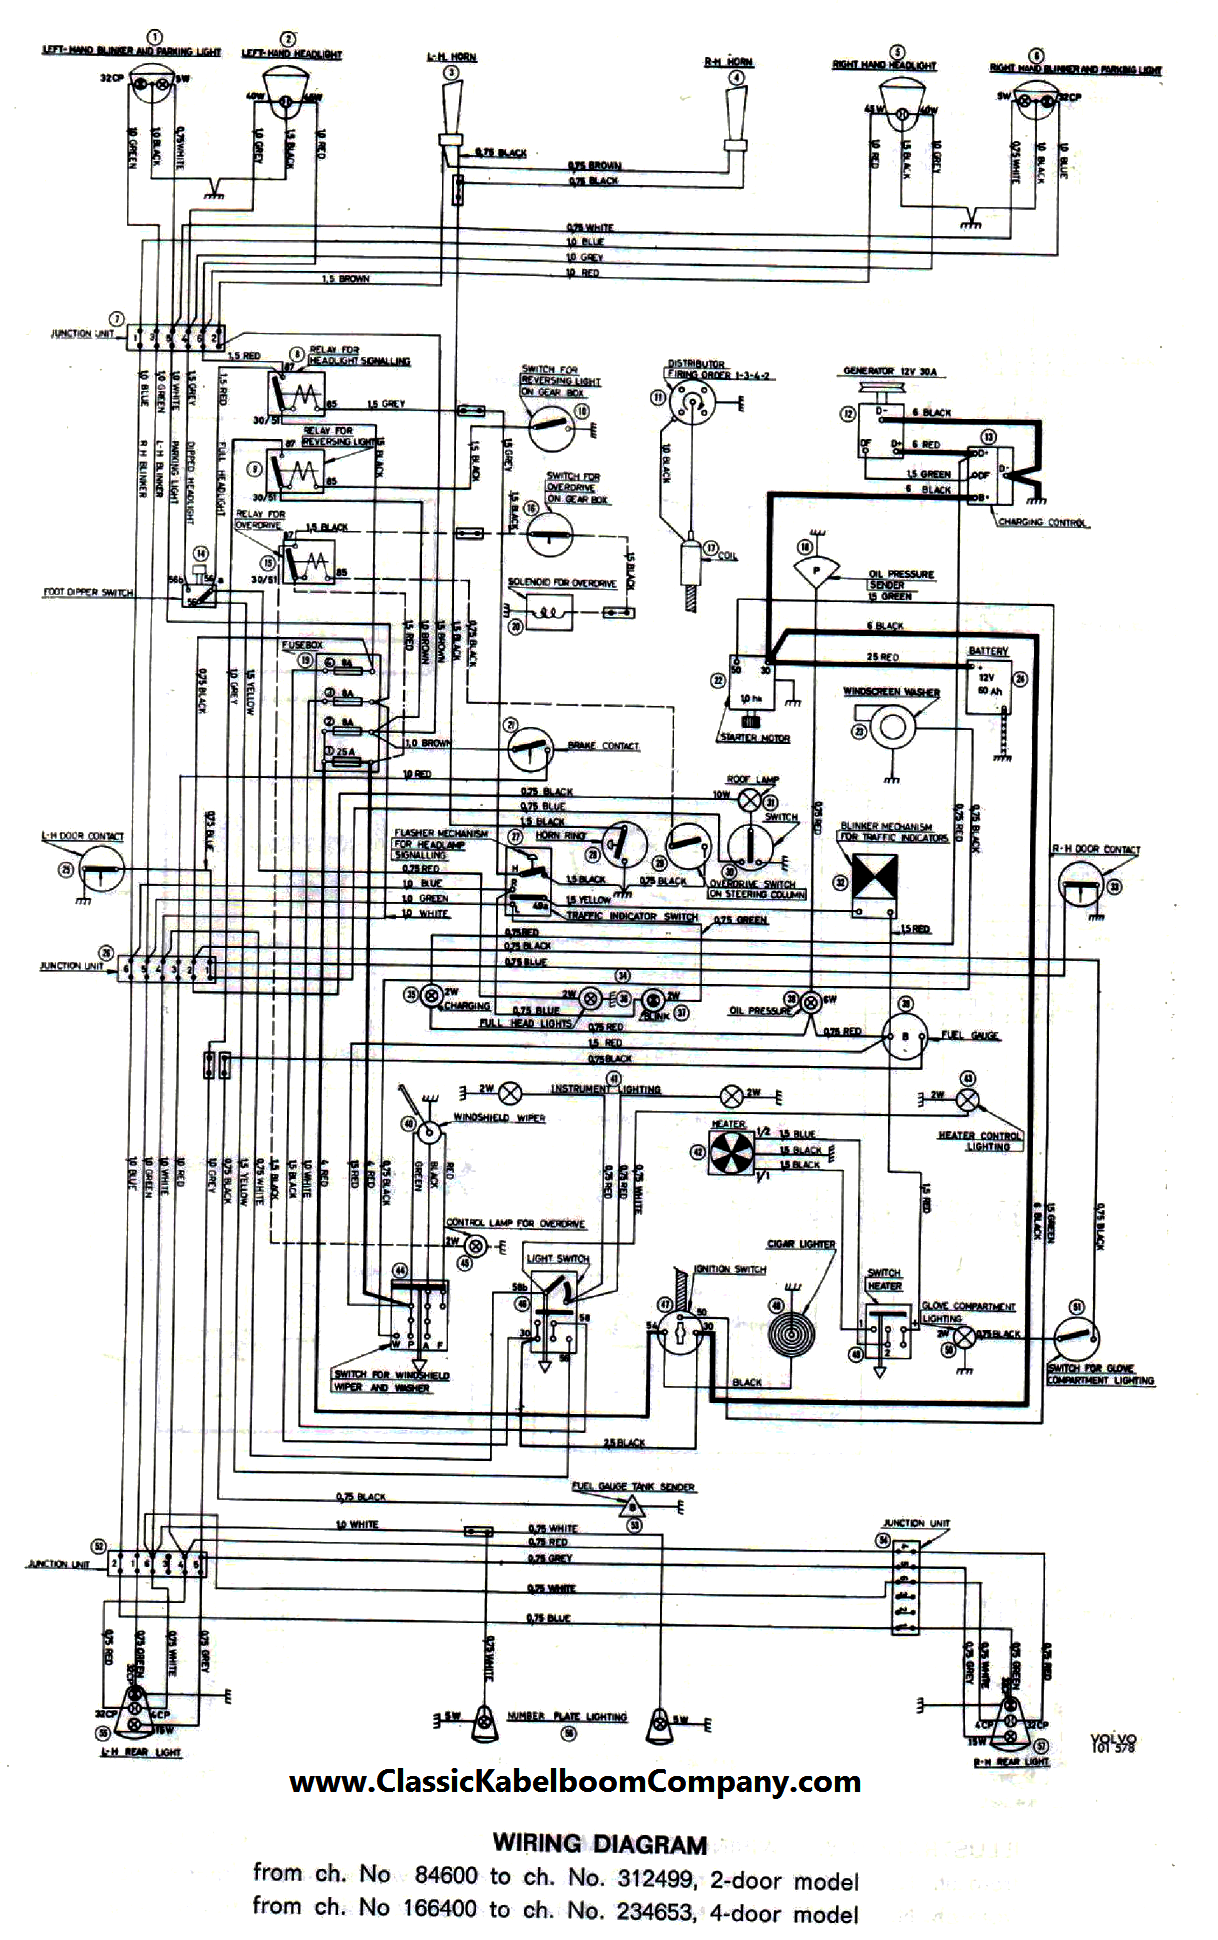 2002 Lincoln Ls Brake Diagram in addition 88 Grand Marquis Circuit Breaker Issue 5947 likewise 7ctcl Expedition 5 4 L Expedtion 2002 5 4l Engine Does Not Start also 52pyq Mercury Grand Marquis Car Won T Start Blue Checked besides 2002 Mercury Cougar Engine Diagram. on 99 cougar fuse box diagram